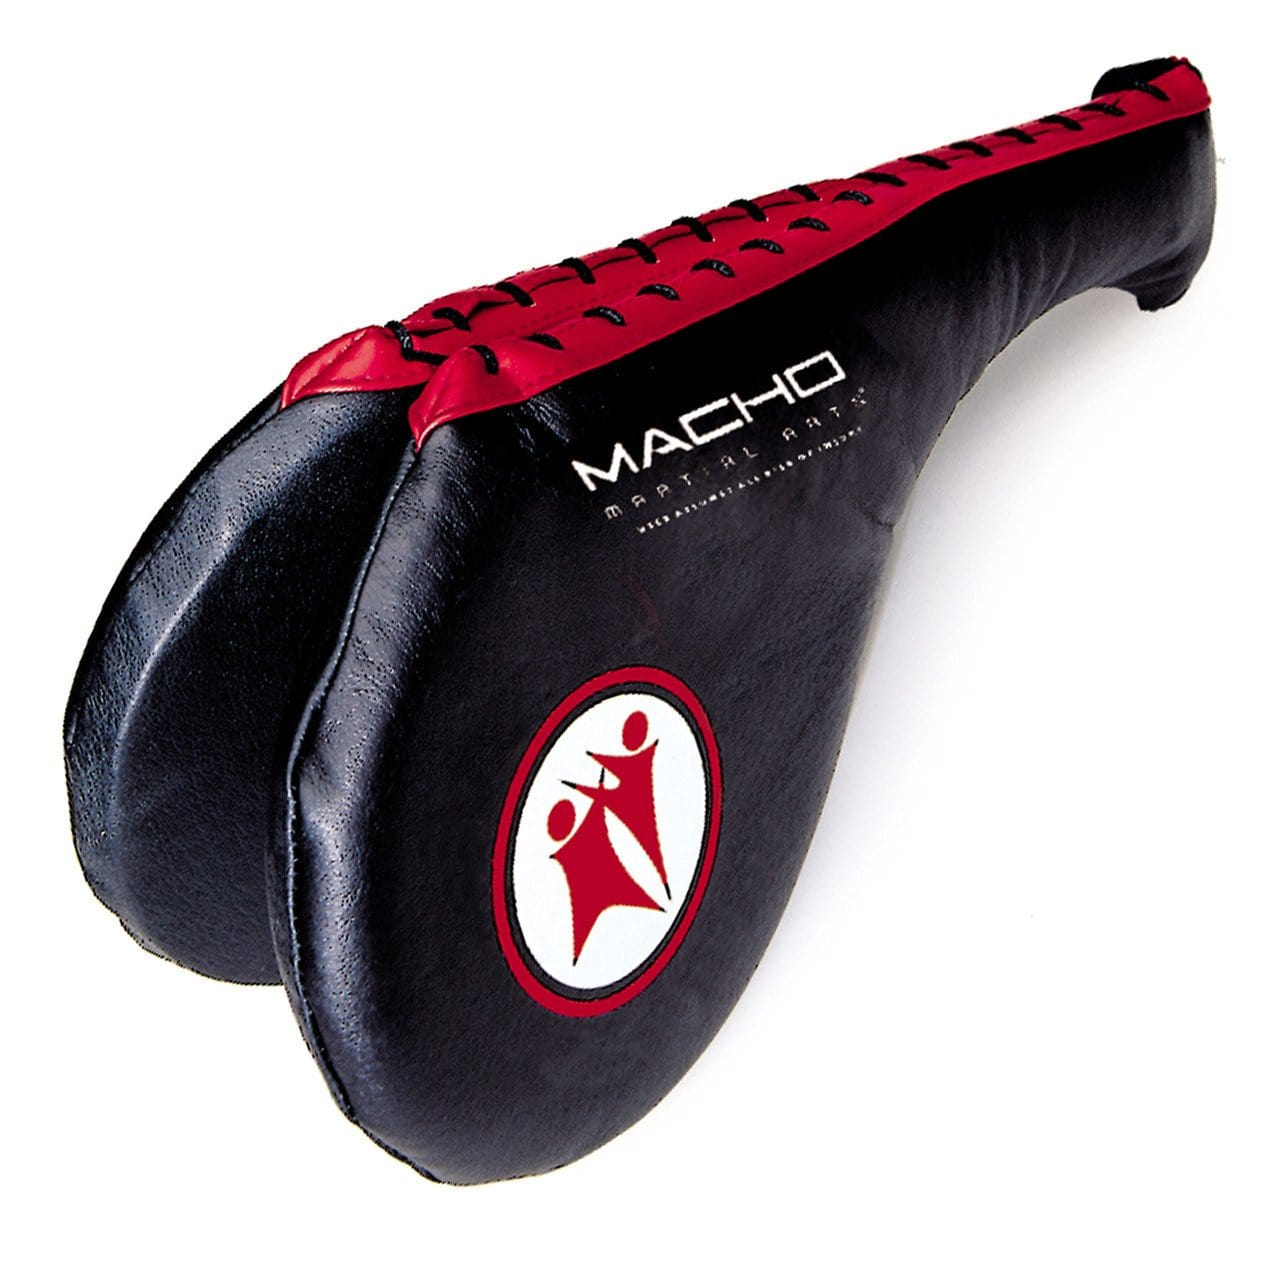 Macho Focus Target - taekwondo racket mWWWFT - BlackBeltShop